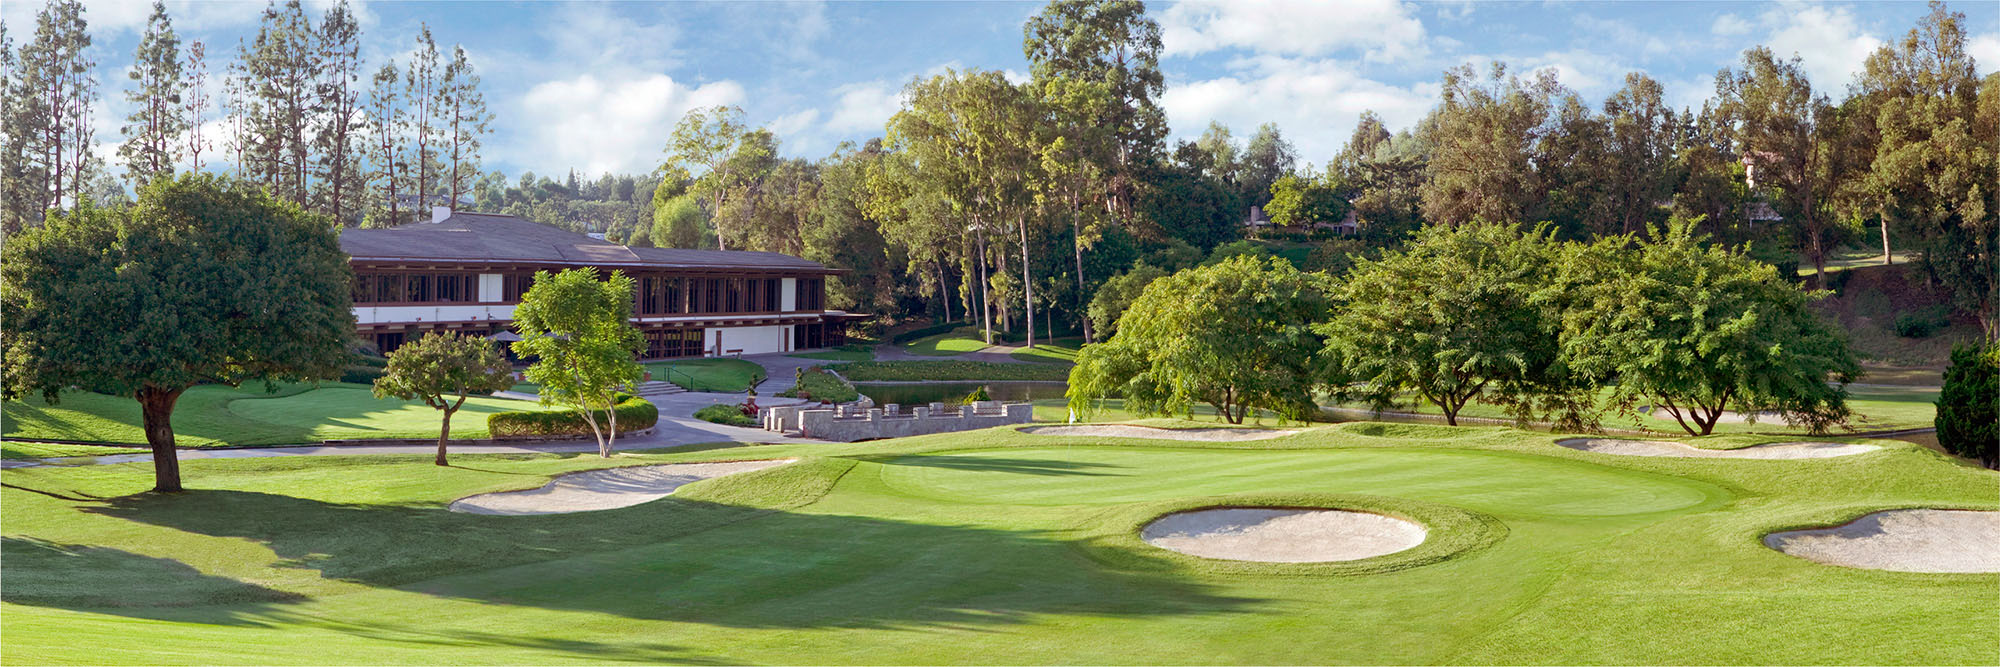 Golf Course Image - Friendly Hills Country Club No. 9